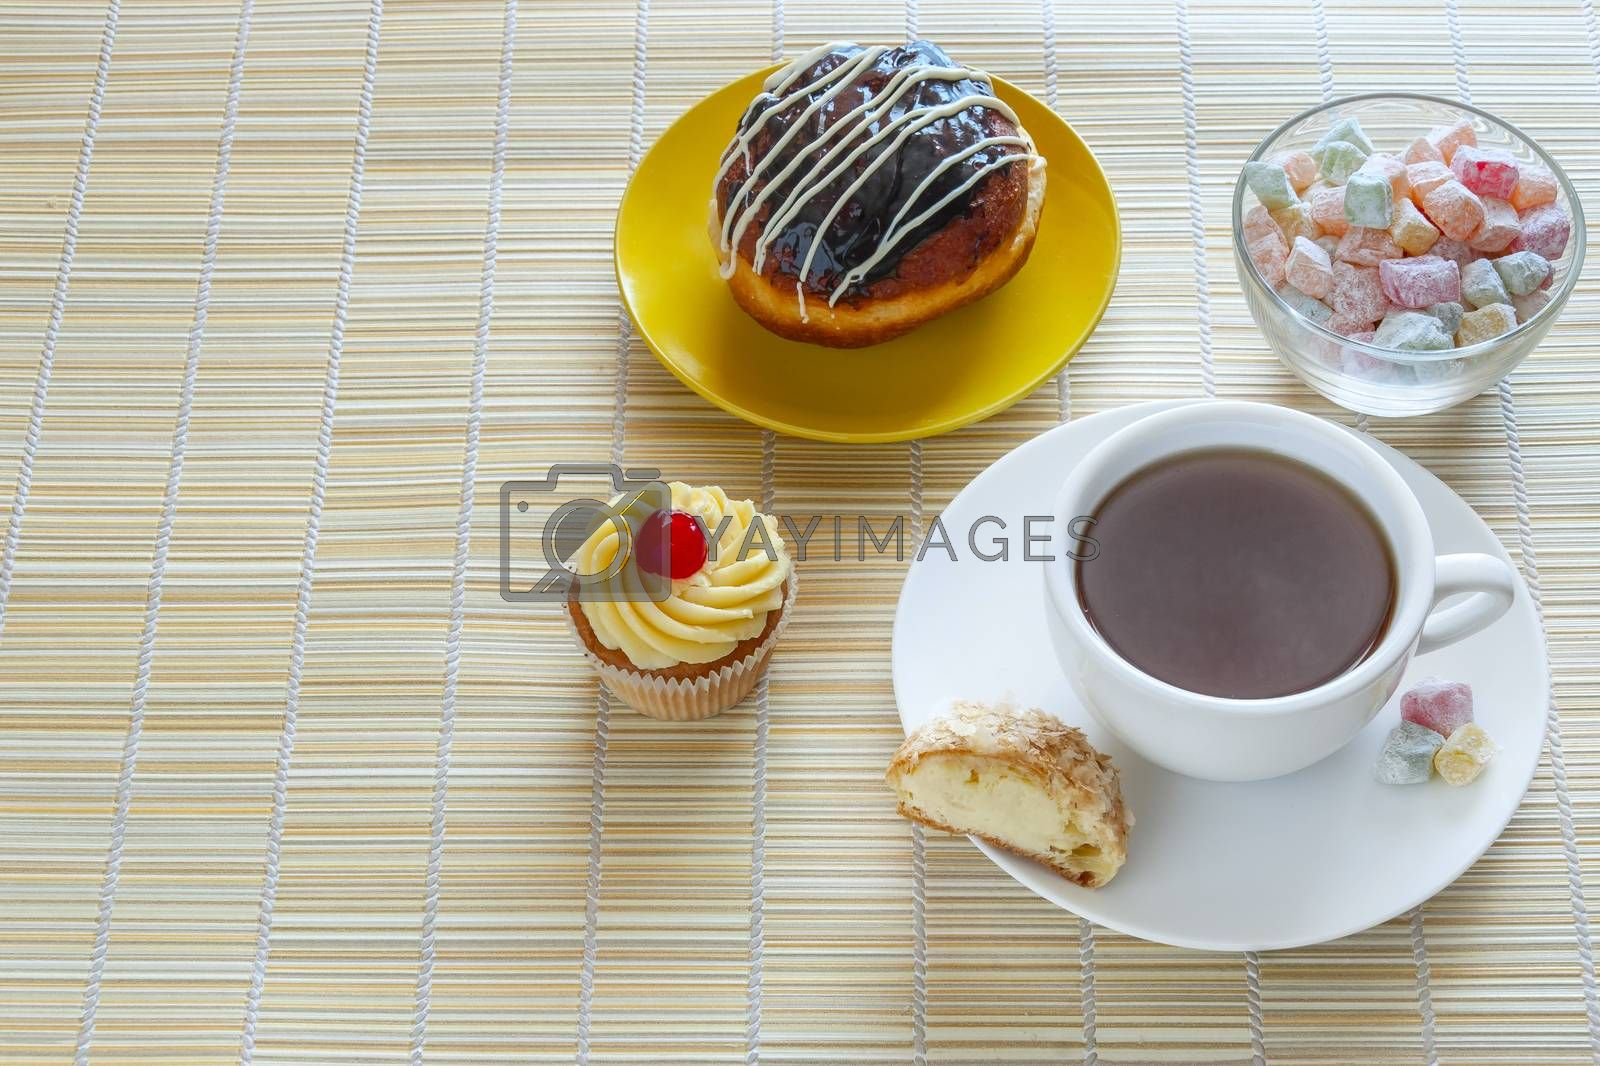 Tea, fresh cherry muffin, colorful delight, half eclair and doughnut, sweet dessert, with place for your text